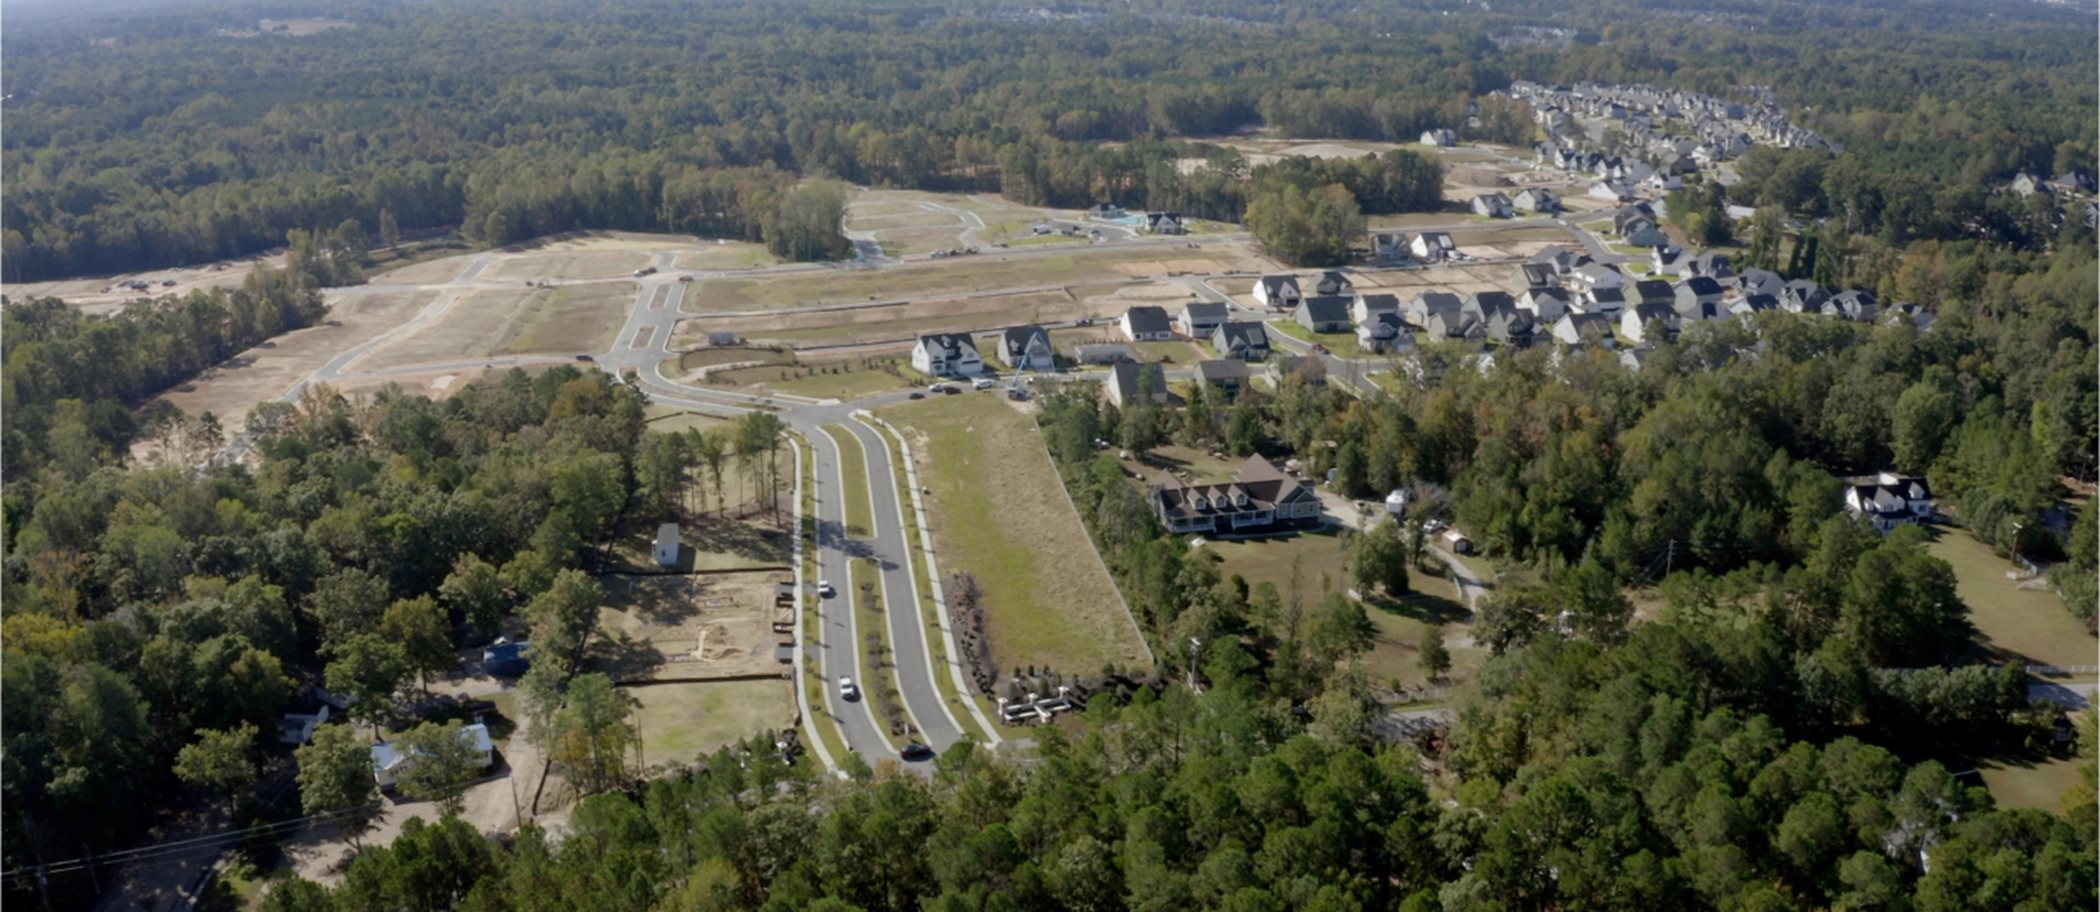 Tryon Single-family homes for sale